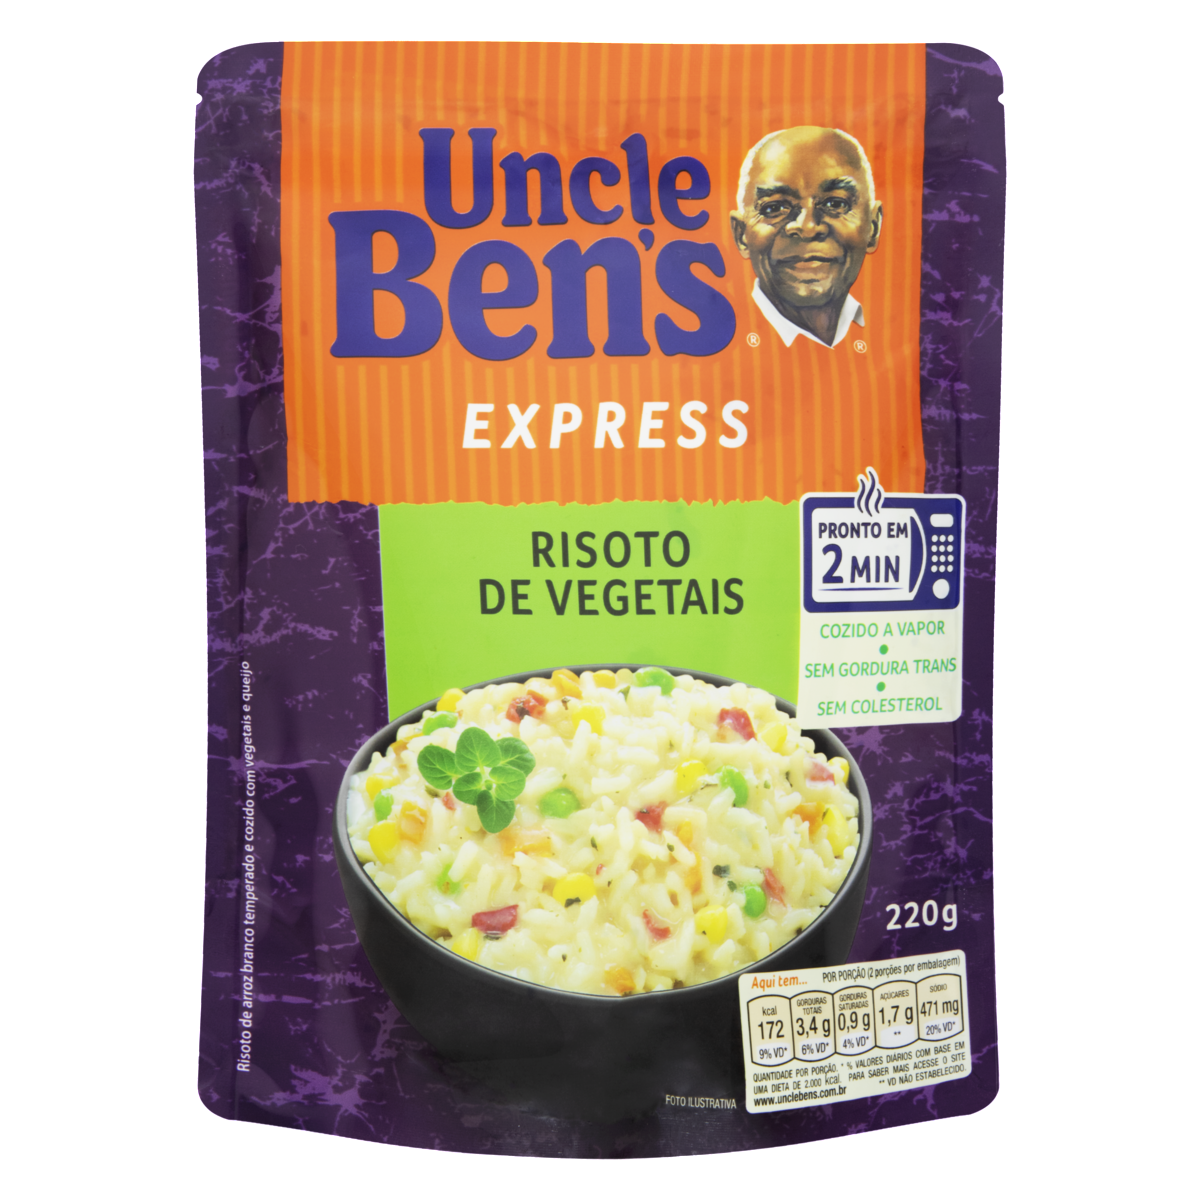 7896003904758 - RISOTO VEGETAIS UNCLE BENS EXPRESS SACHÊ 220G